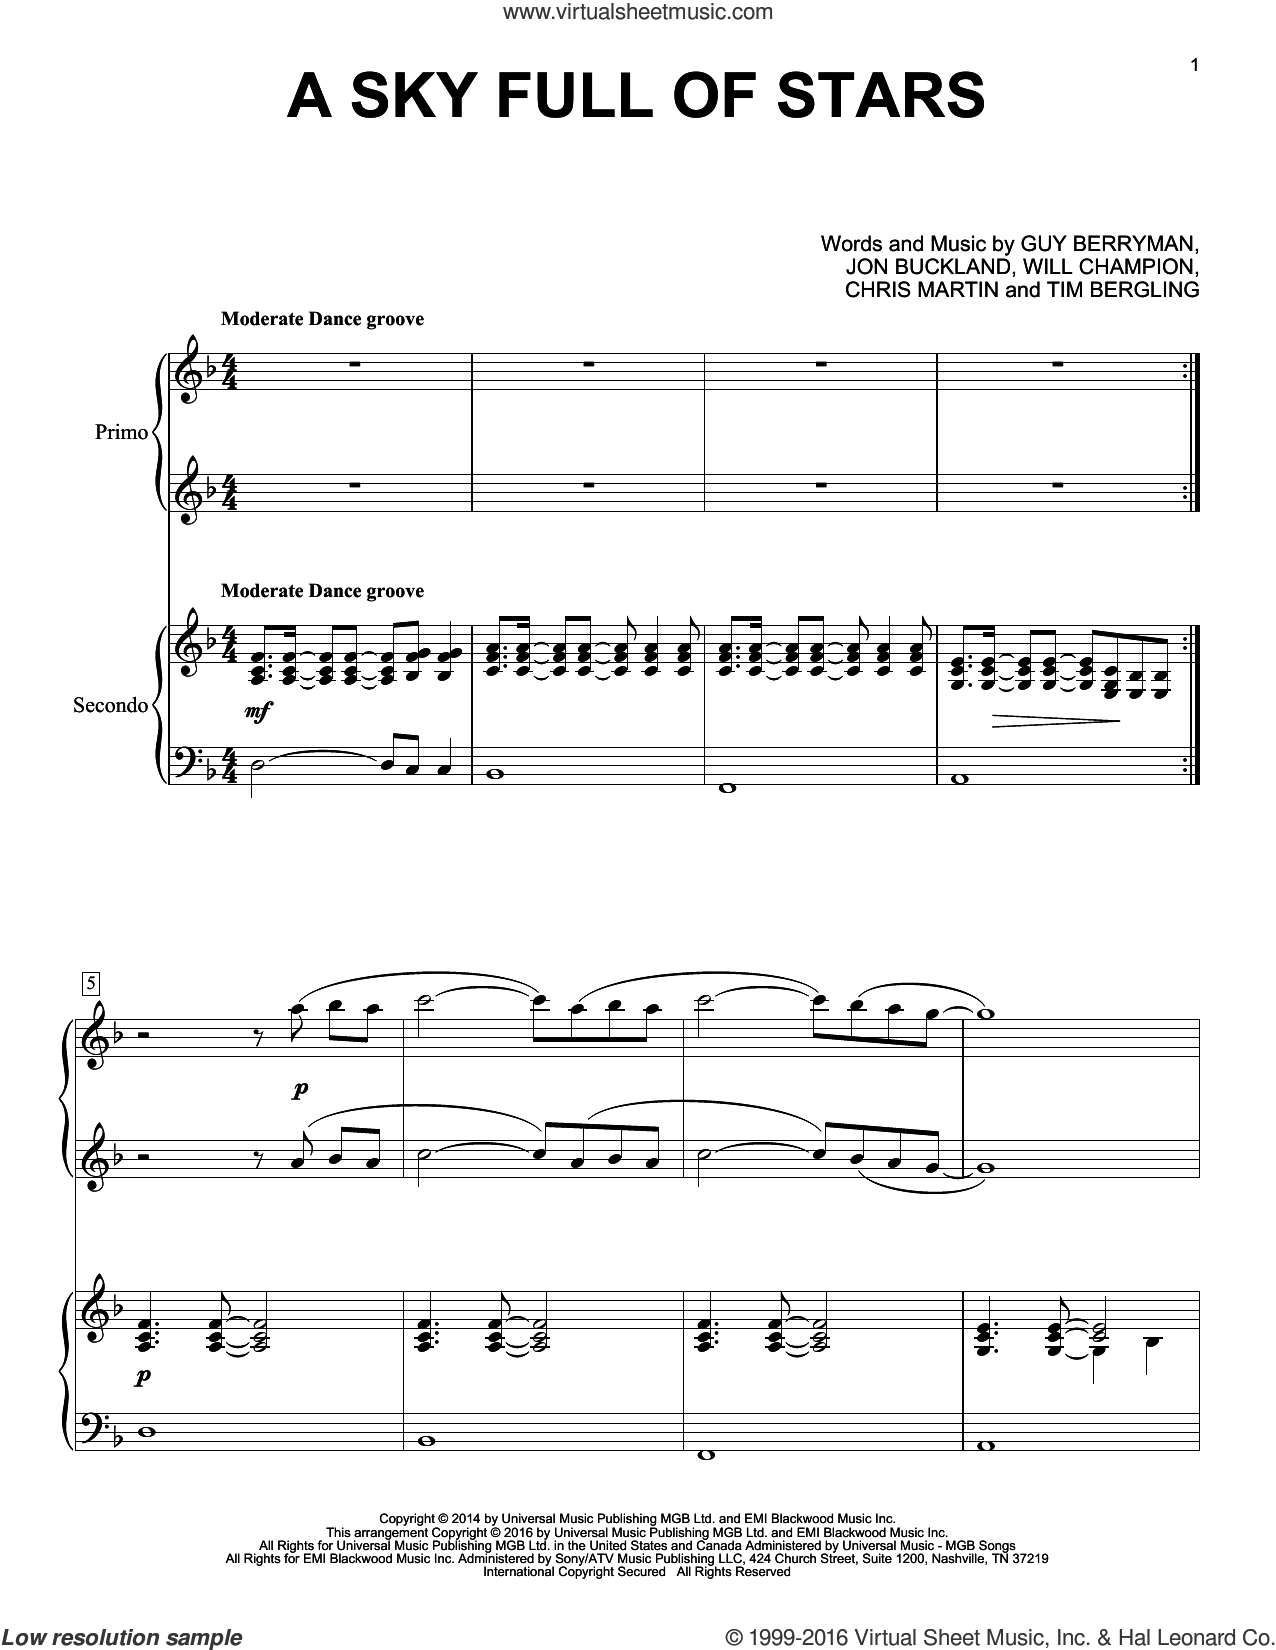 A Sky Full Of Stars sheet music for piano four hands by Coldplay, Chris Martin, Guy Berryman, Jon Buckland, Tim Bergling and Will Champion, wedding score, intermediate skill level